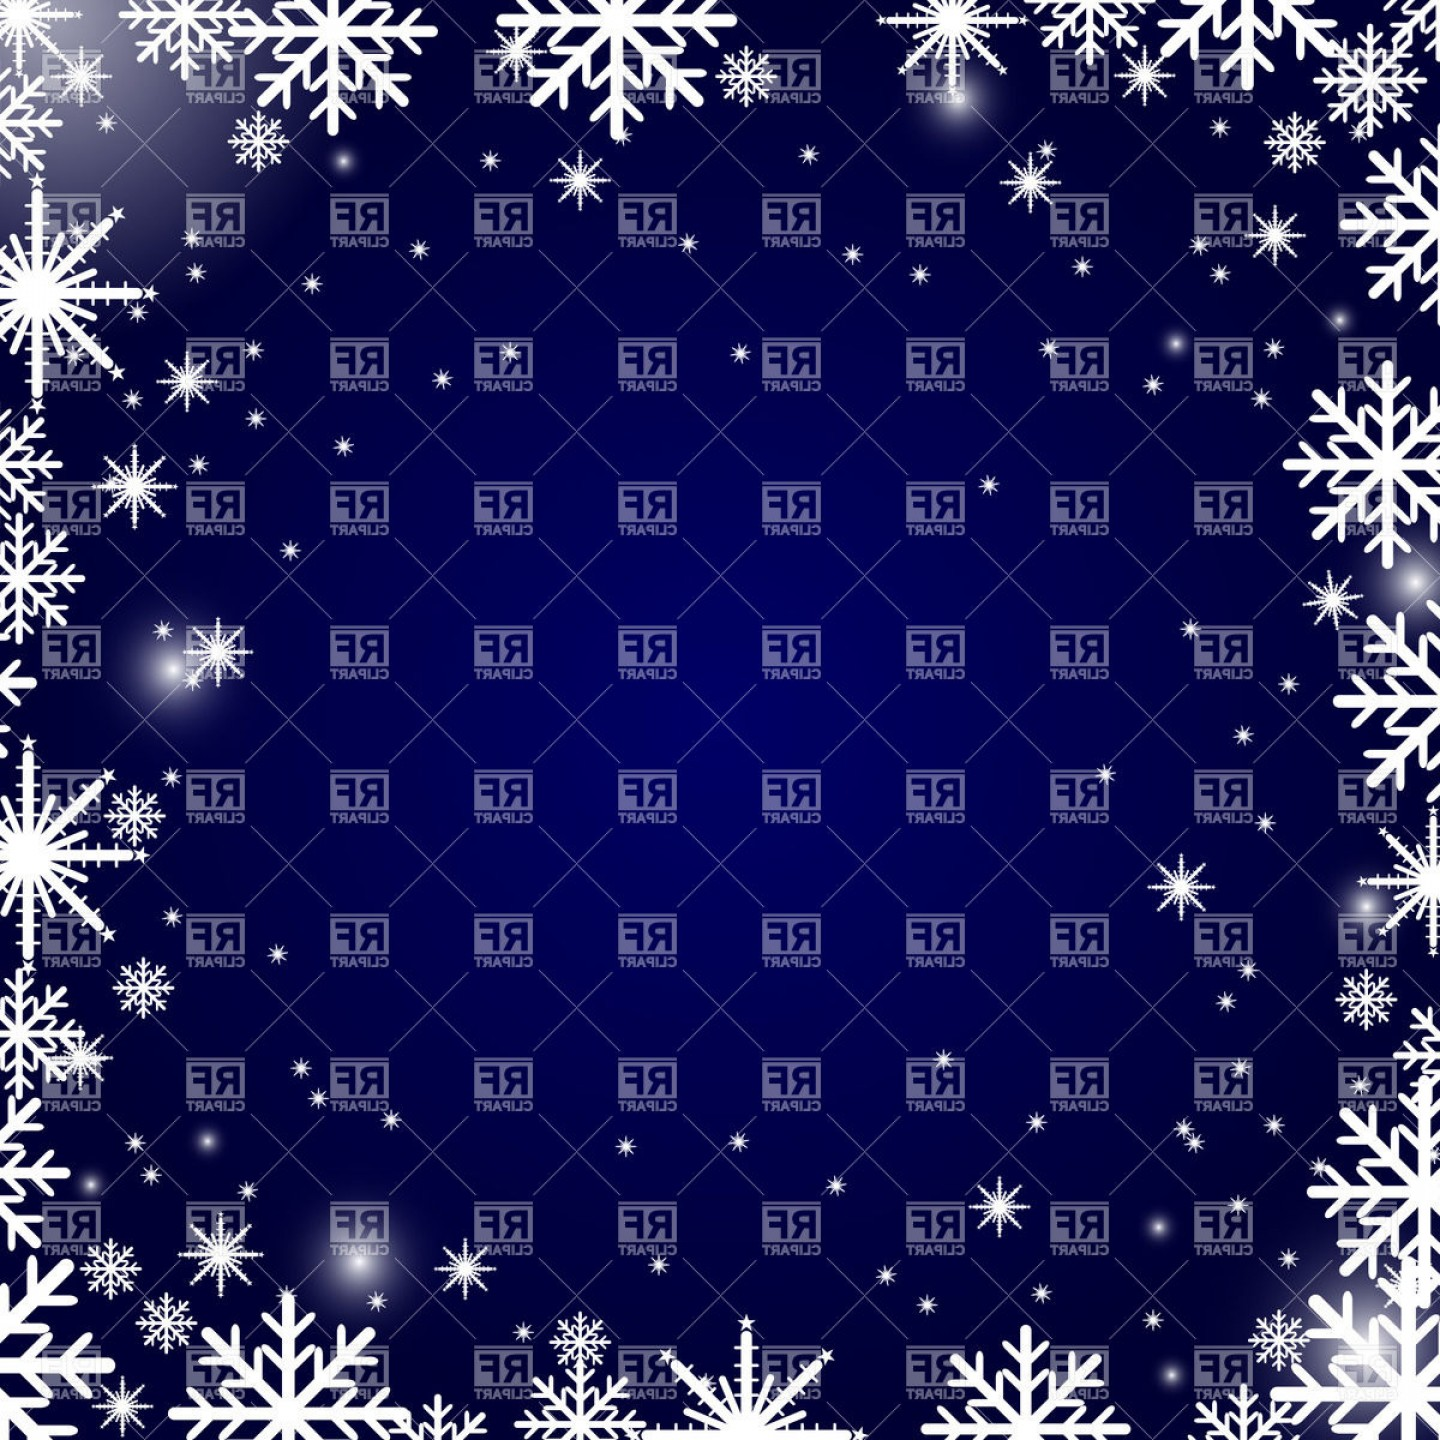 Snowflake Border Vector Art: Christmas Snowflakes Frame Blue Background Vector Clipart